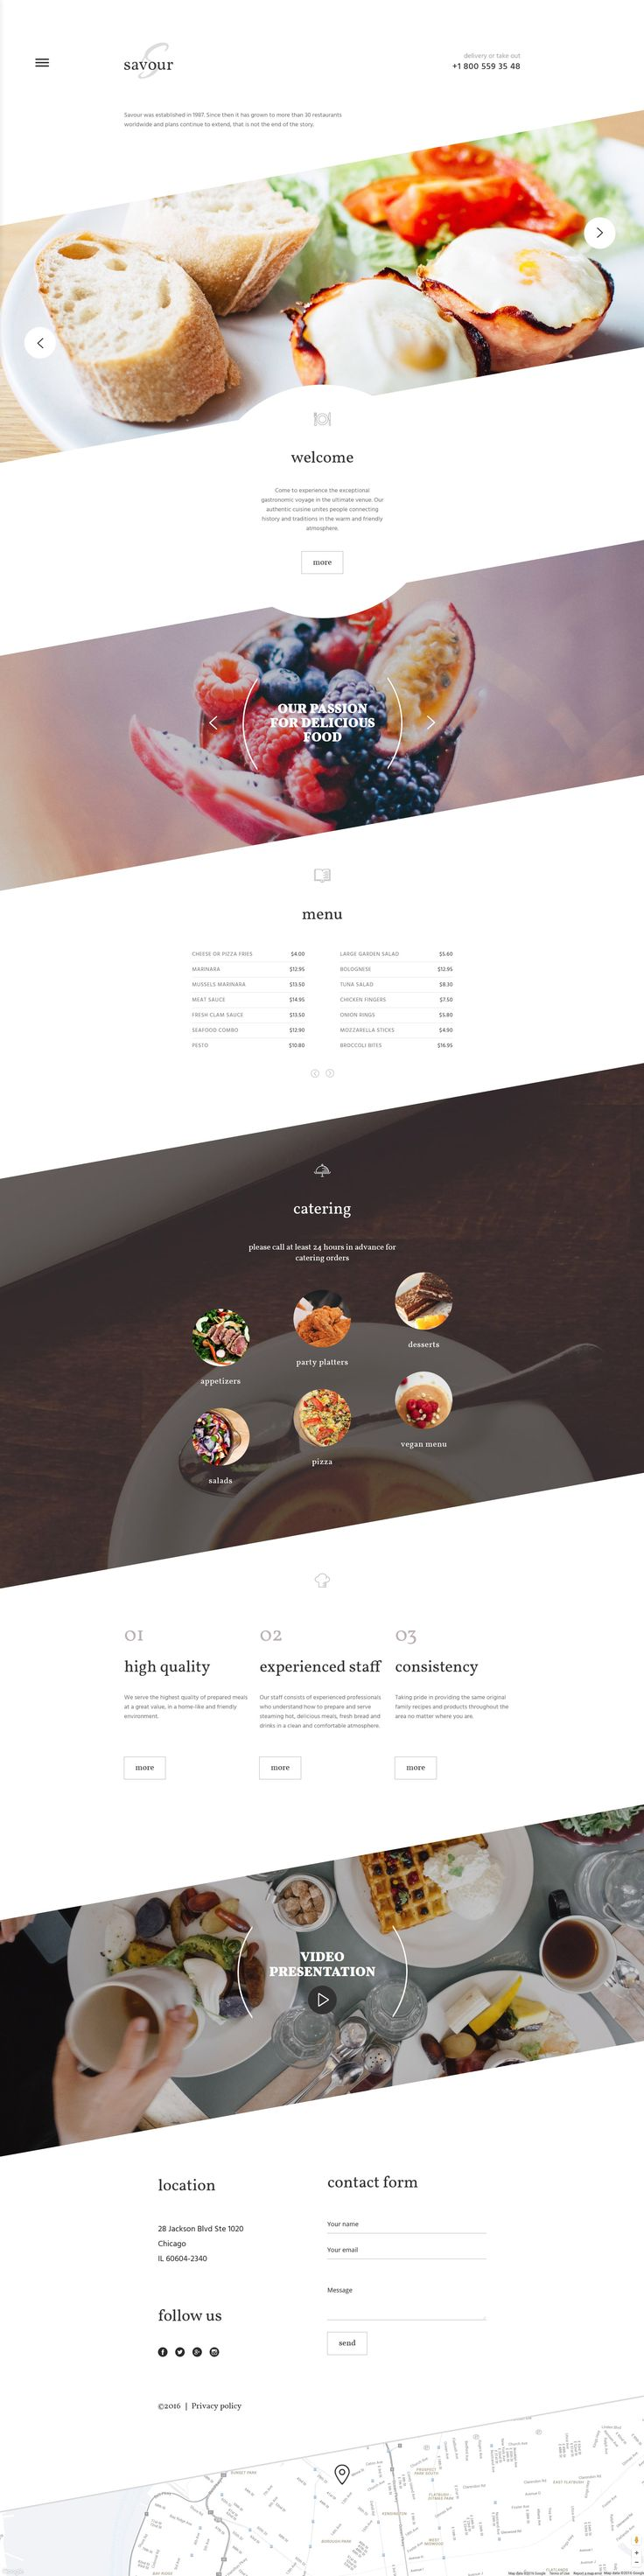 Cafe and Restaurant Responsive Website Template http://www.templatemonster.com/website-templates/cafe-and-restaurant-responsive-website-template-58833.html